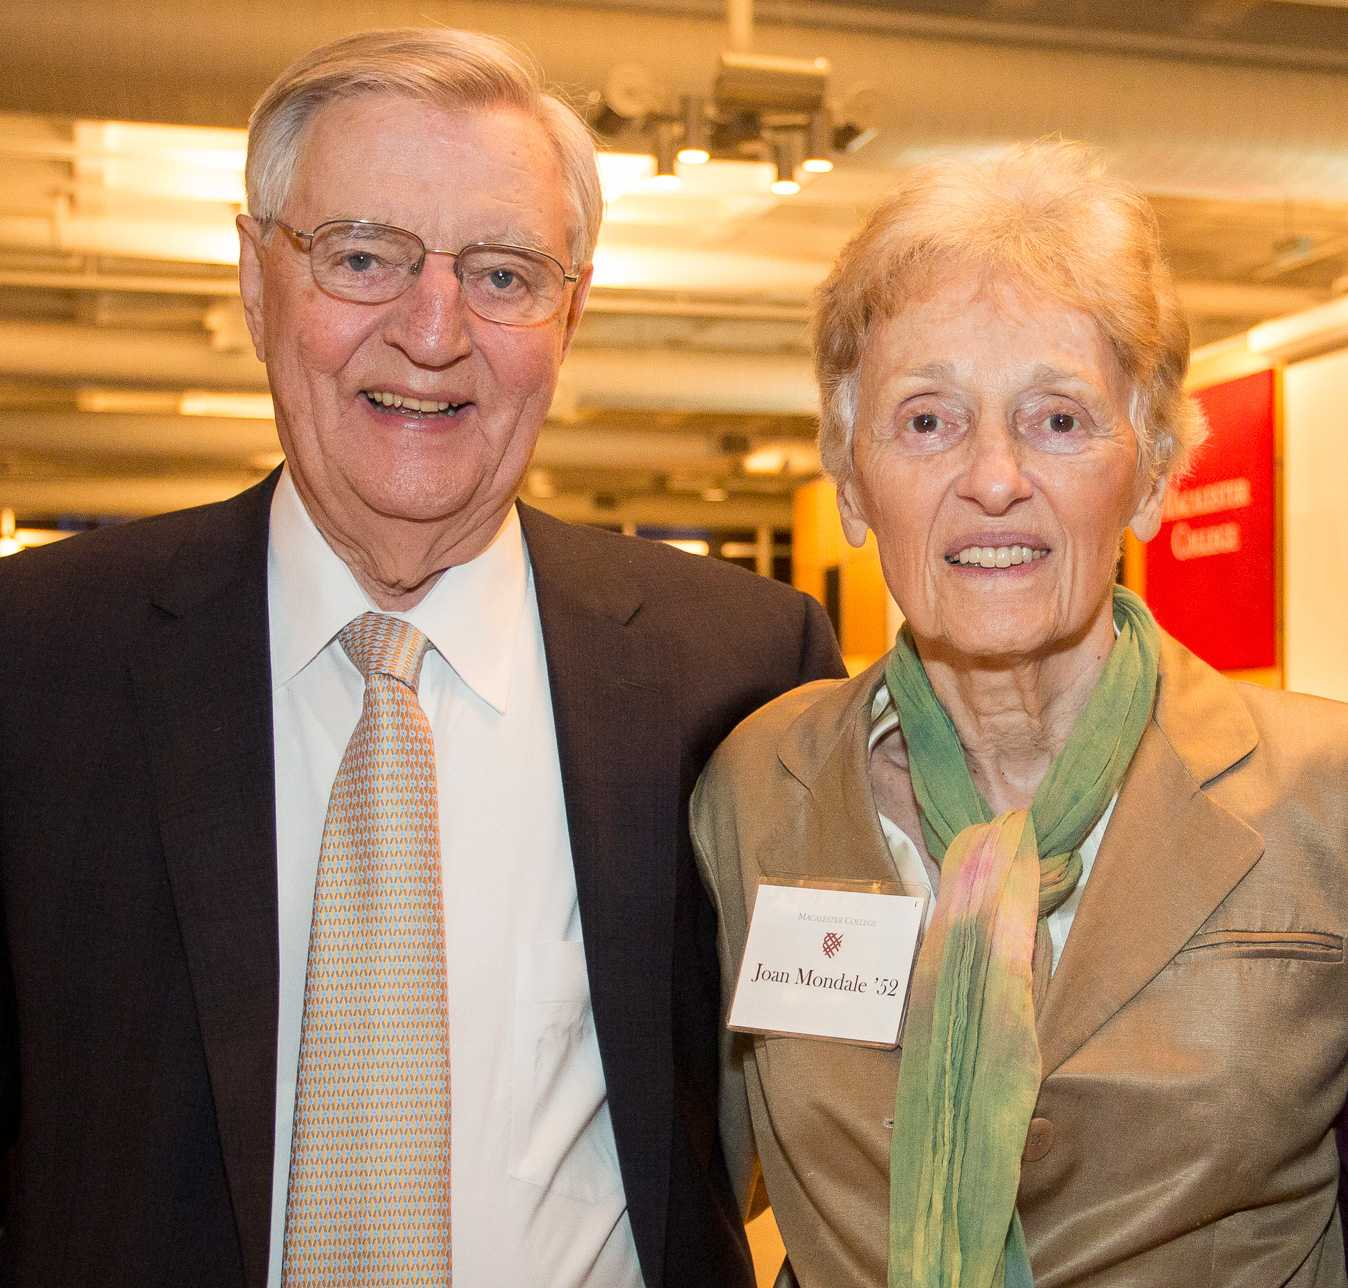 Joan Mondale '52 was a strong advocate for the arts at Macalester. To honor her memory, the Macalester Concert Choir will perform at her memorial service. Photos courtesy of Macalester College.